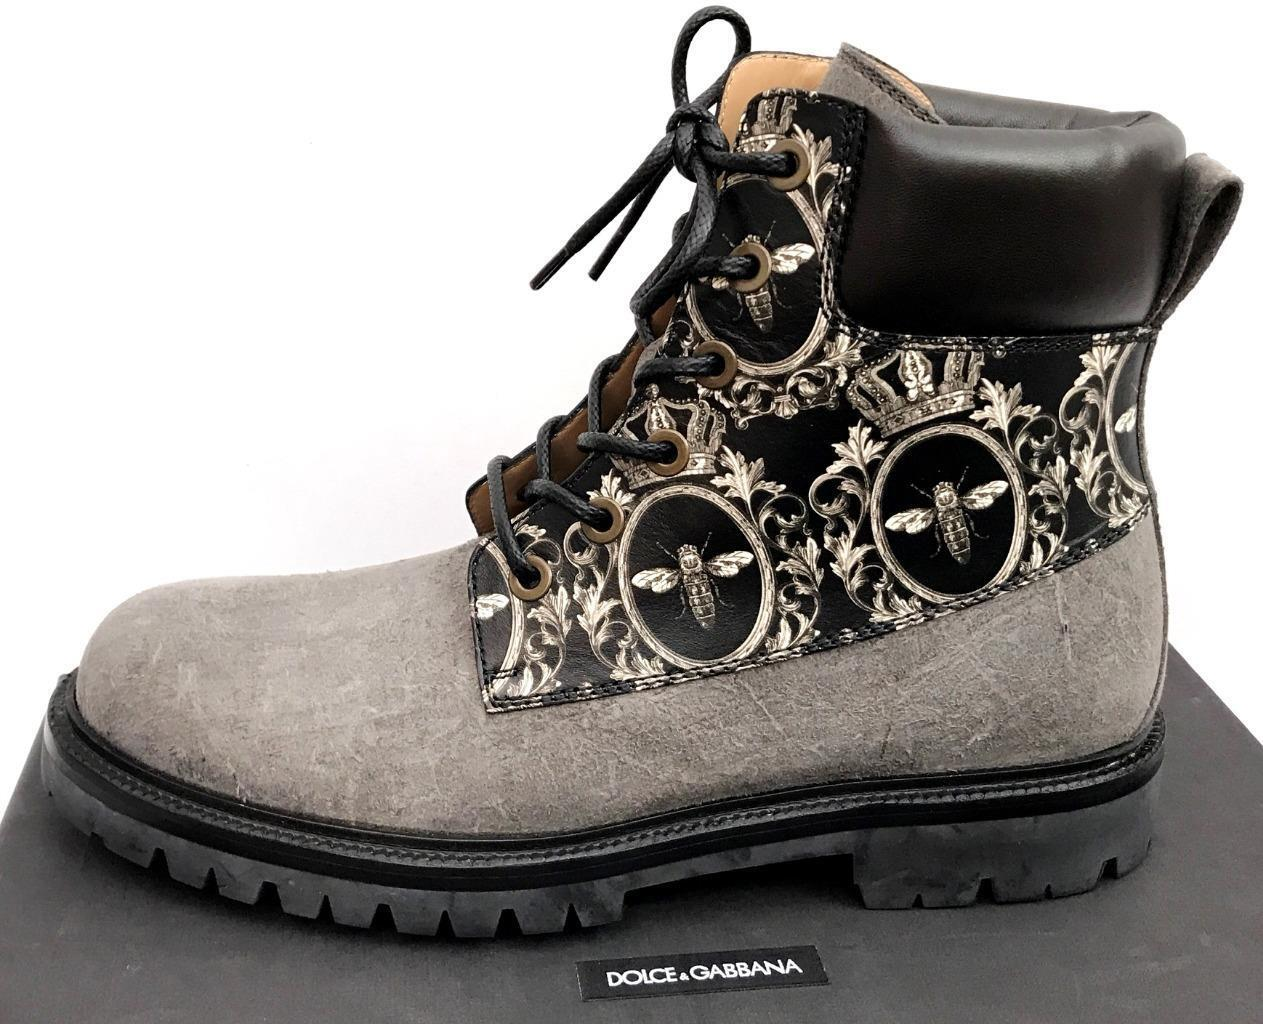 Dolce Gabbana Leather Boots UK10.5 IT44.5, US11.5 RP790GBP Black/Grey New Auth